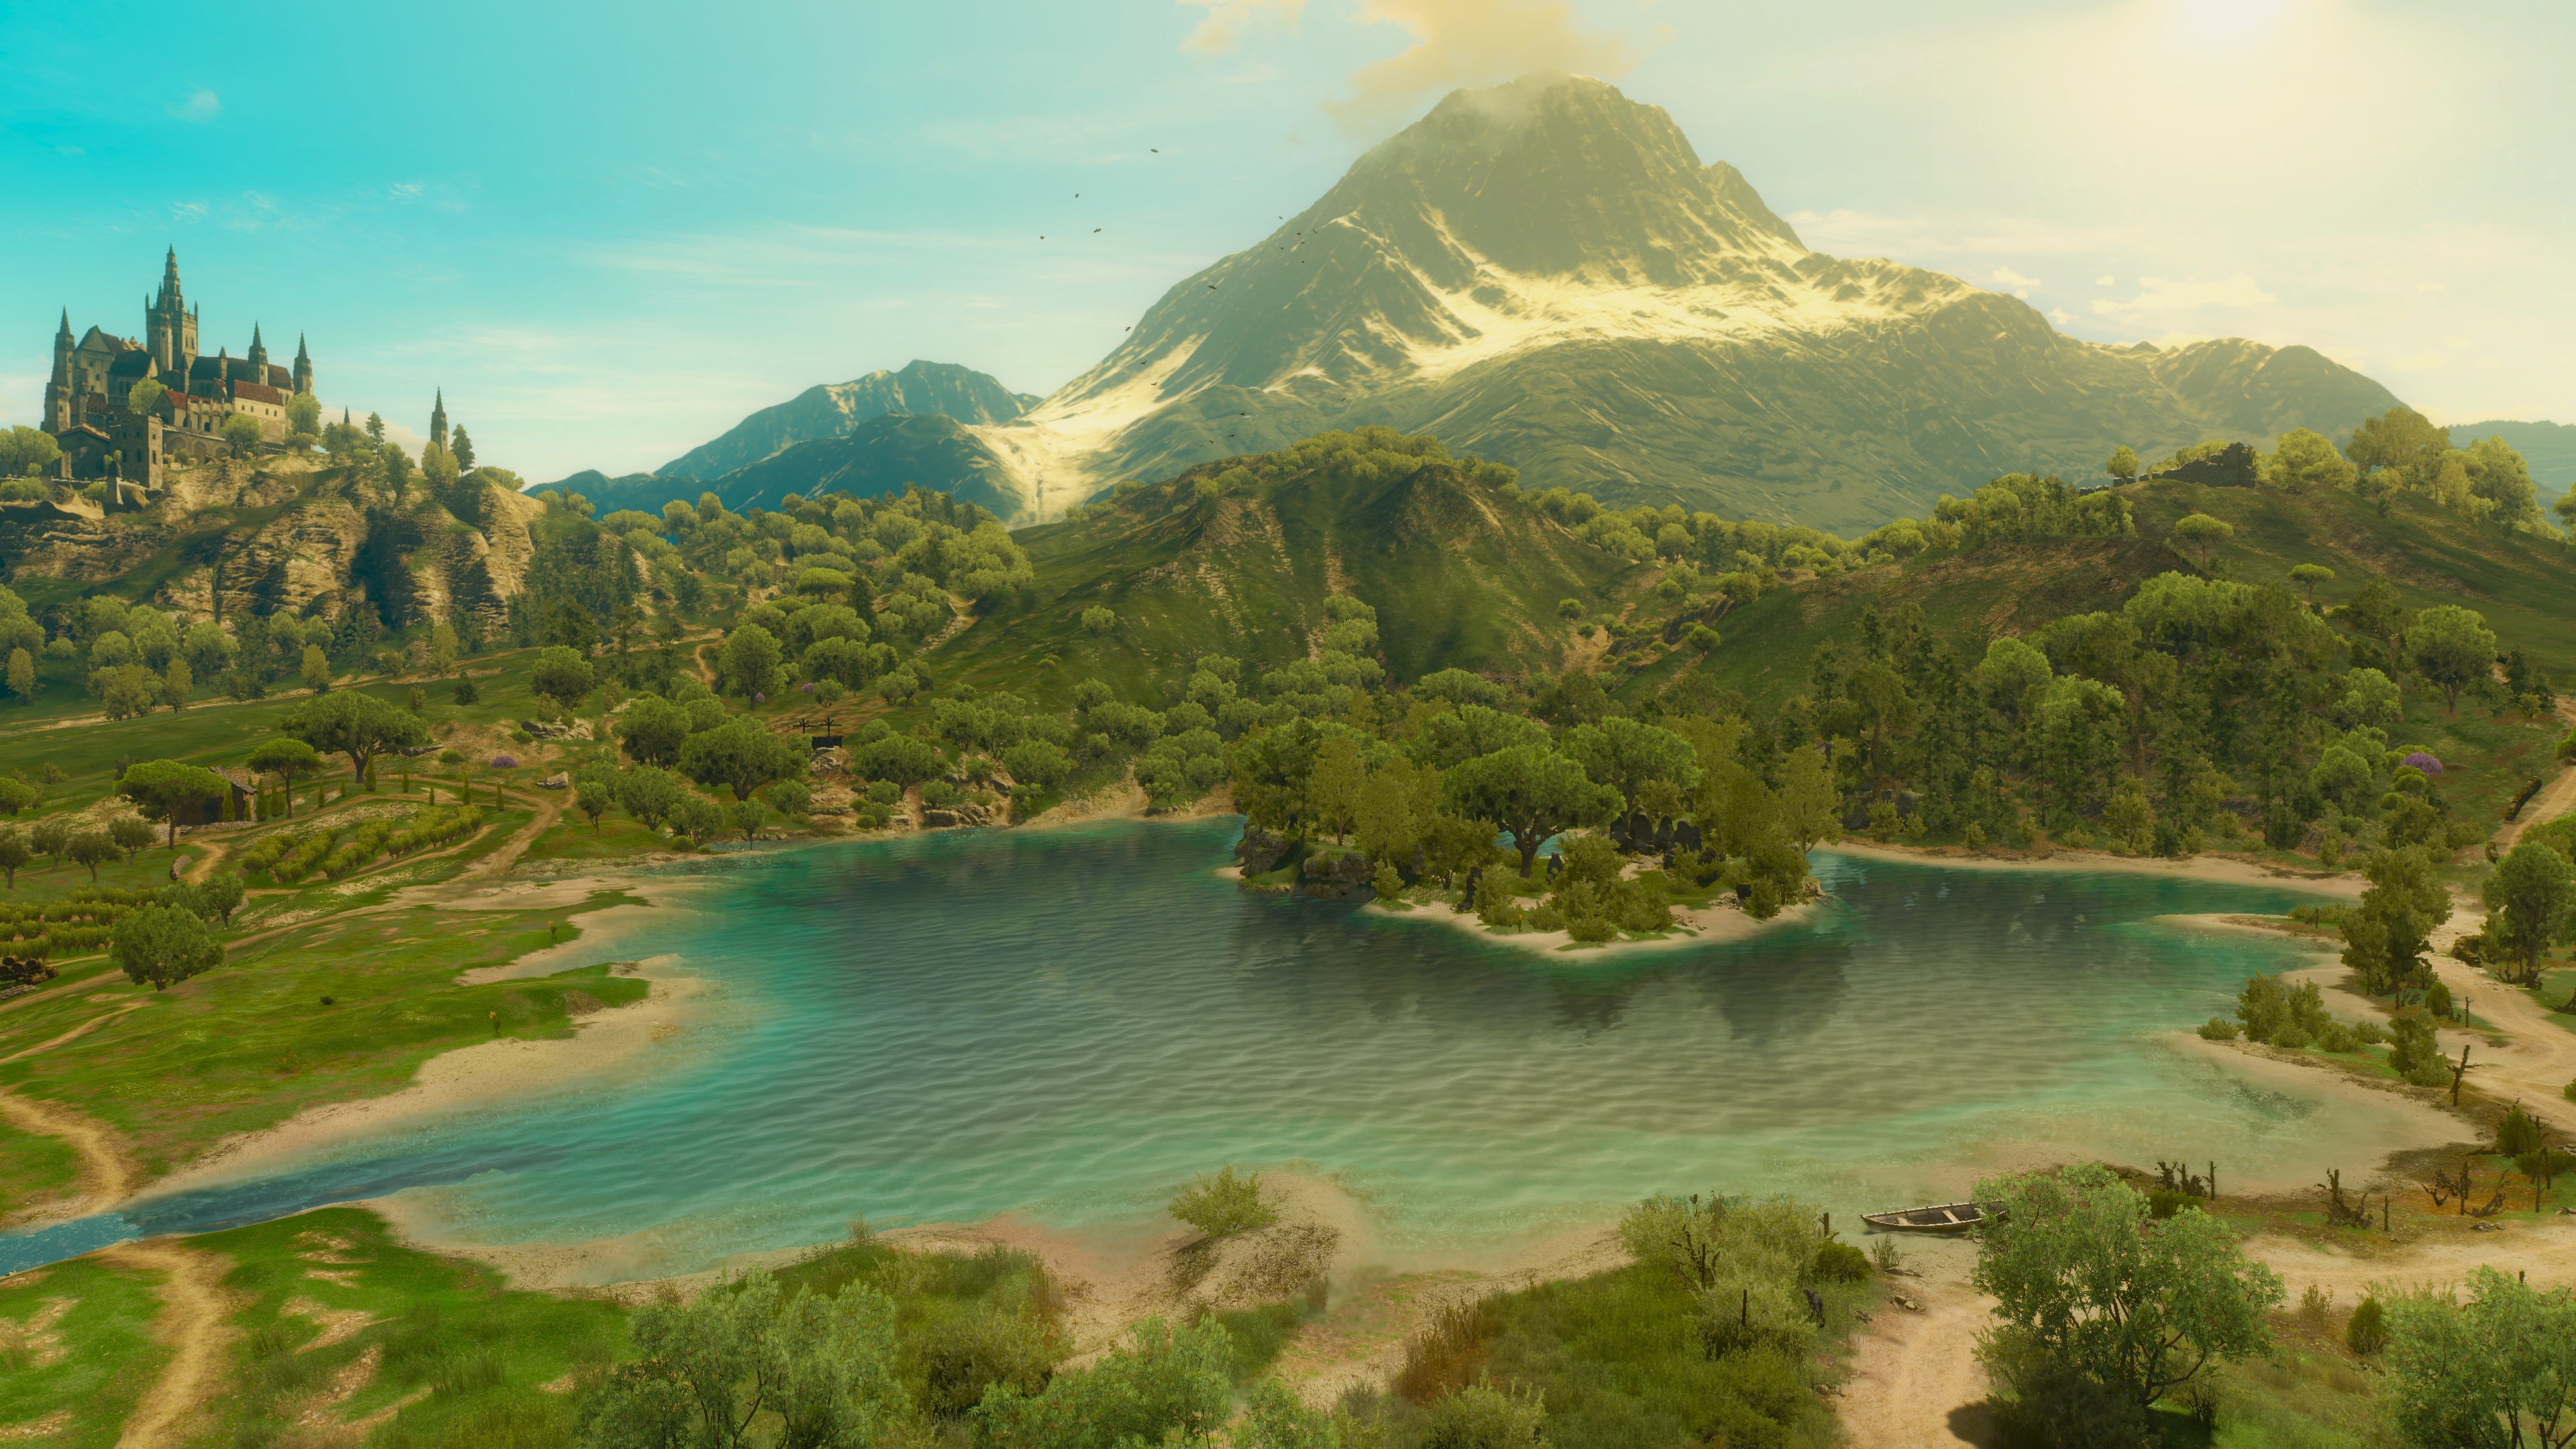 Lac celavy in toussaint.jpg